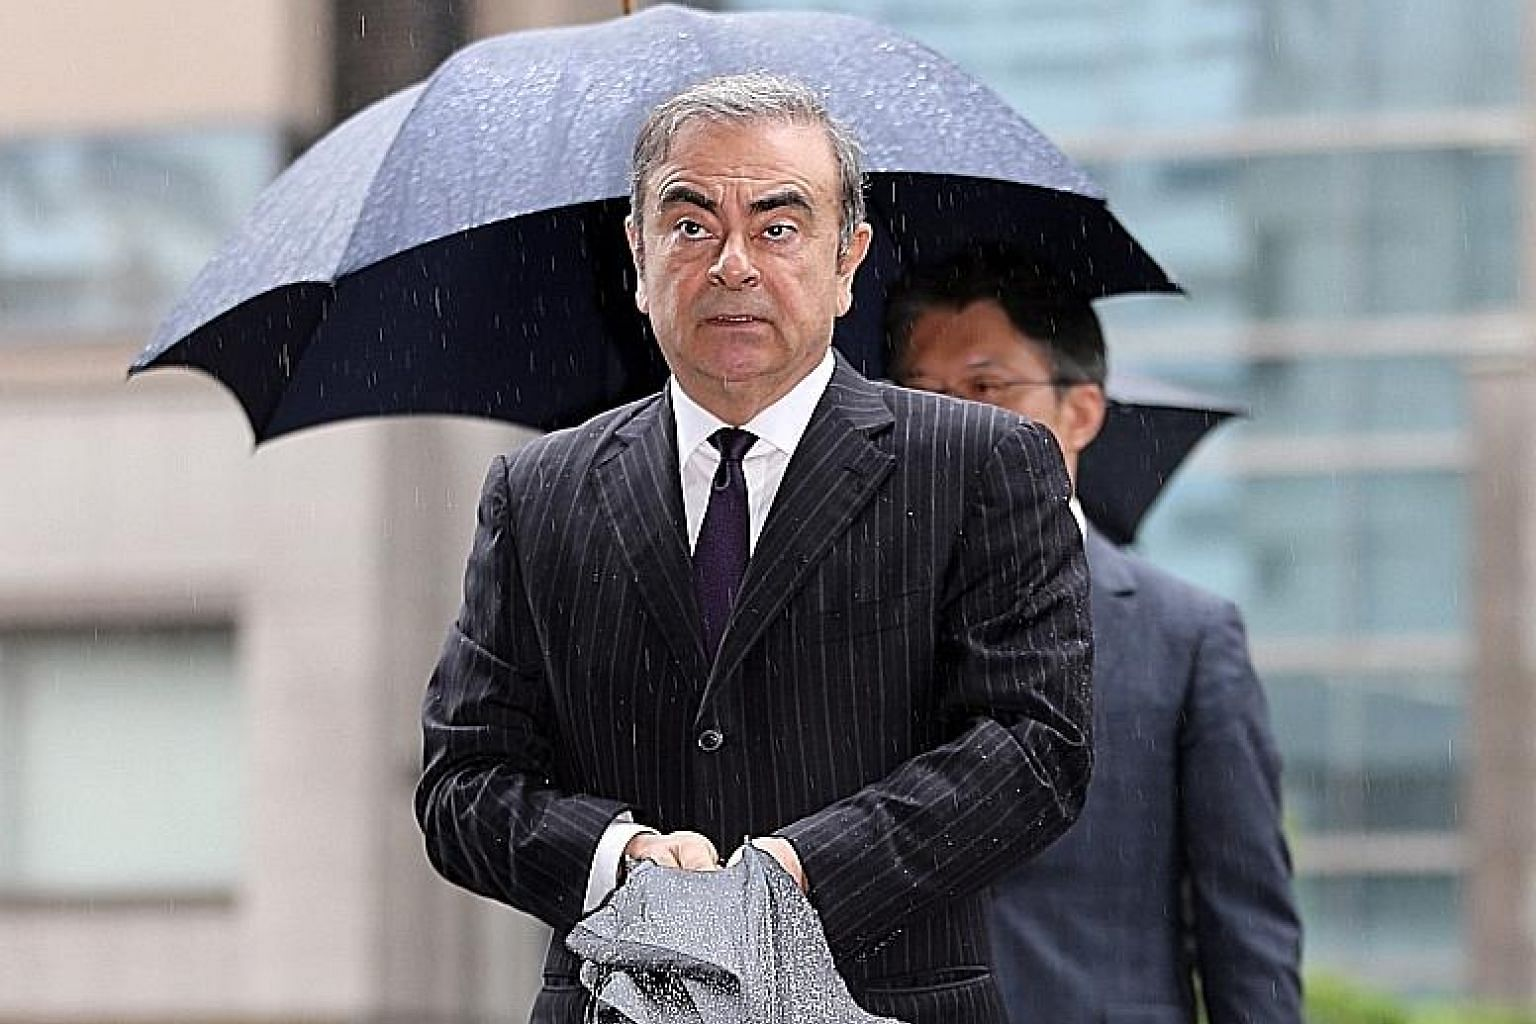 Carlos Ghosn, the former head of the Renault-Nissan-Mitsubishi carmaking alliance, was arrested in Tokyo last year and is out on bail of US$13.5 million (S$18.5 million).